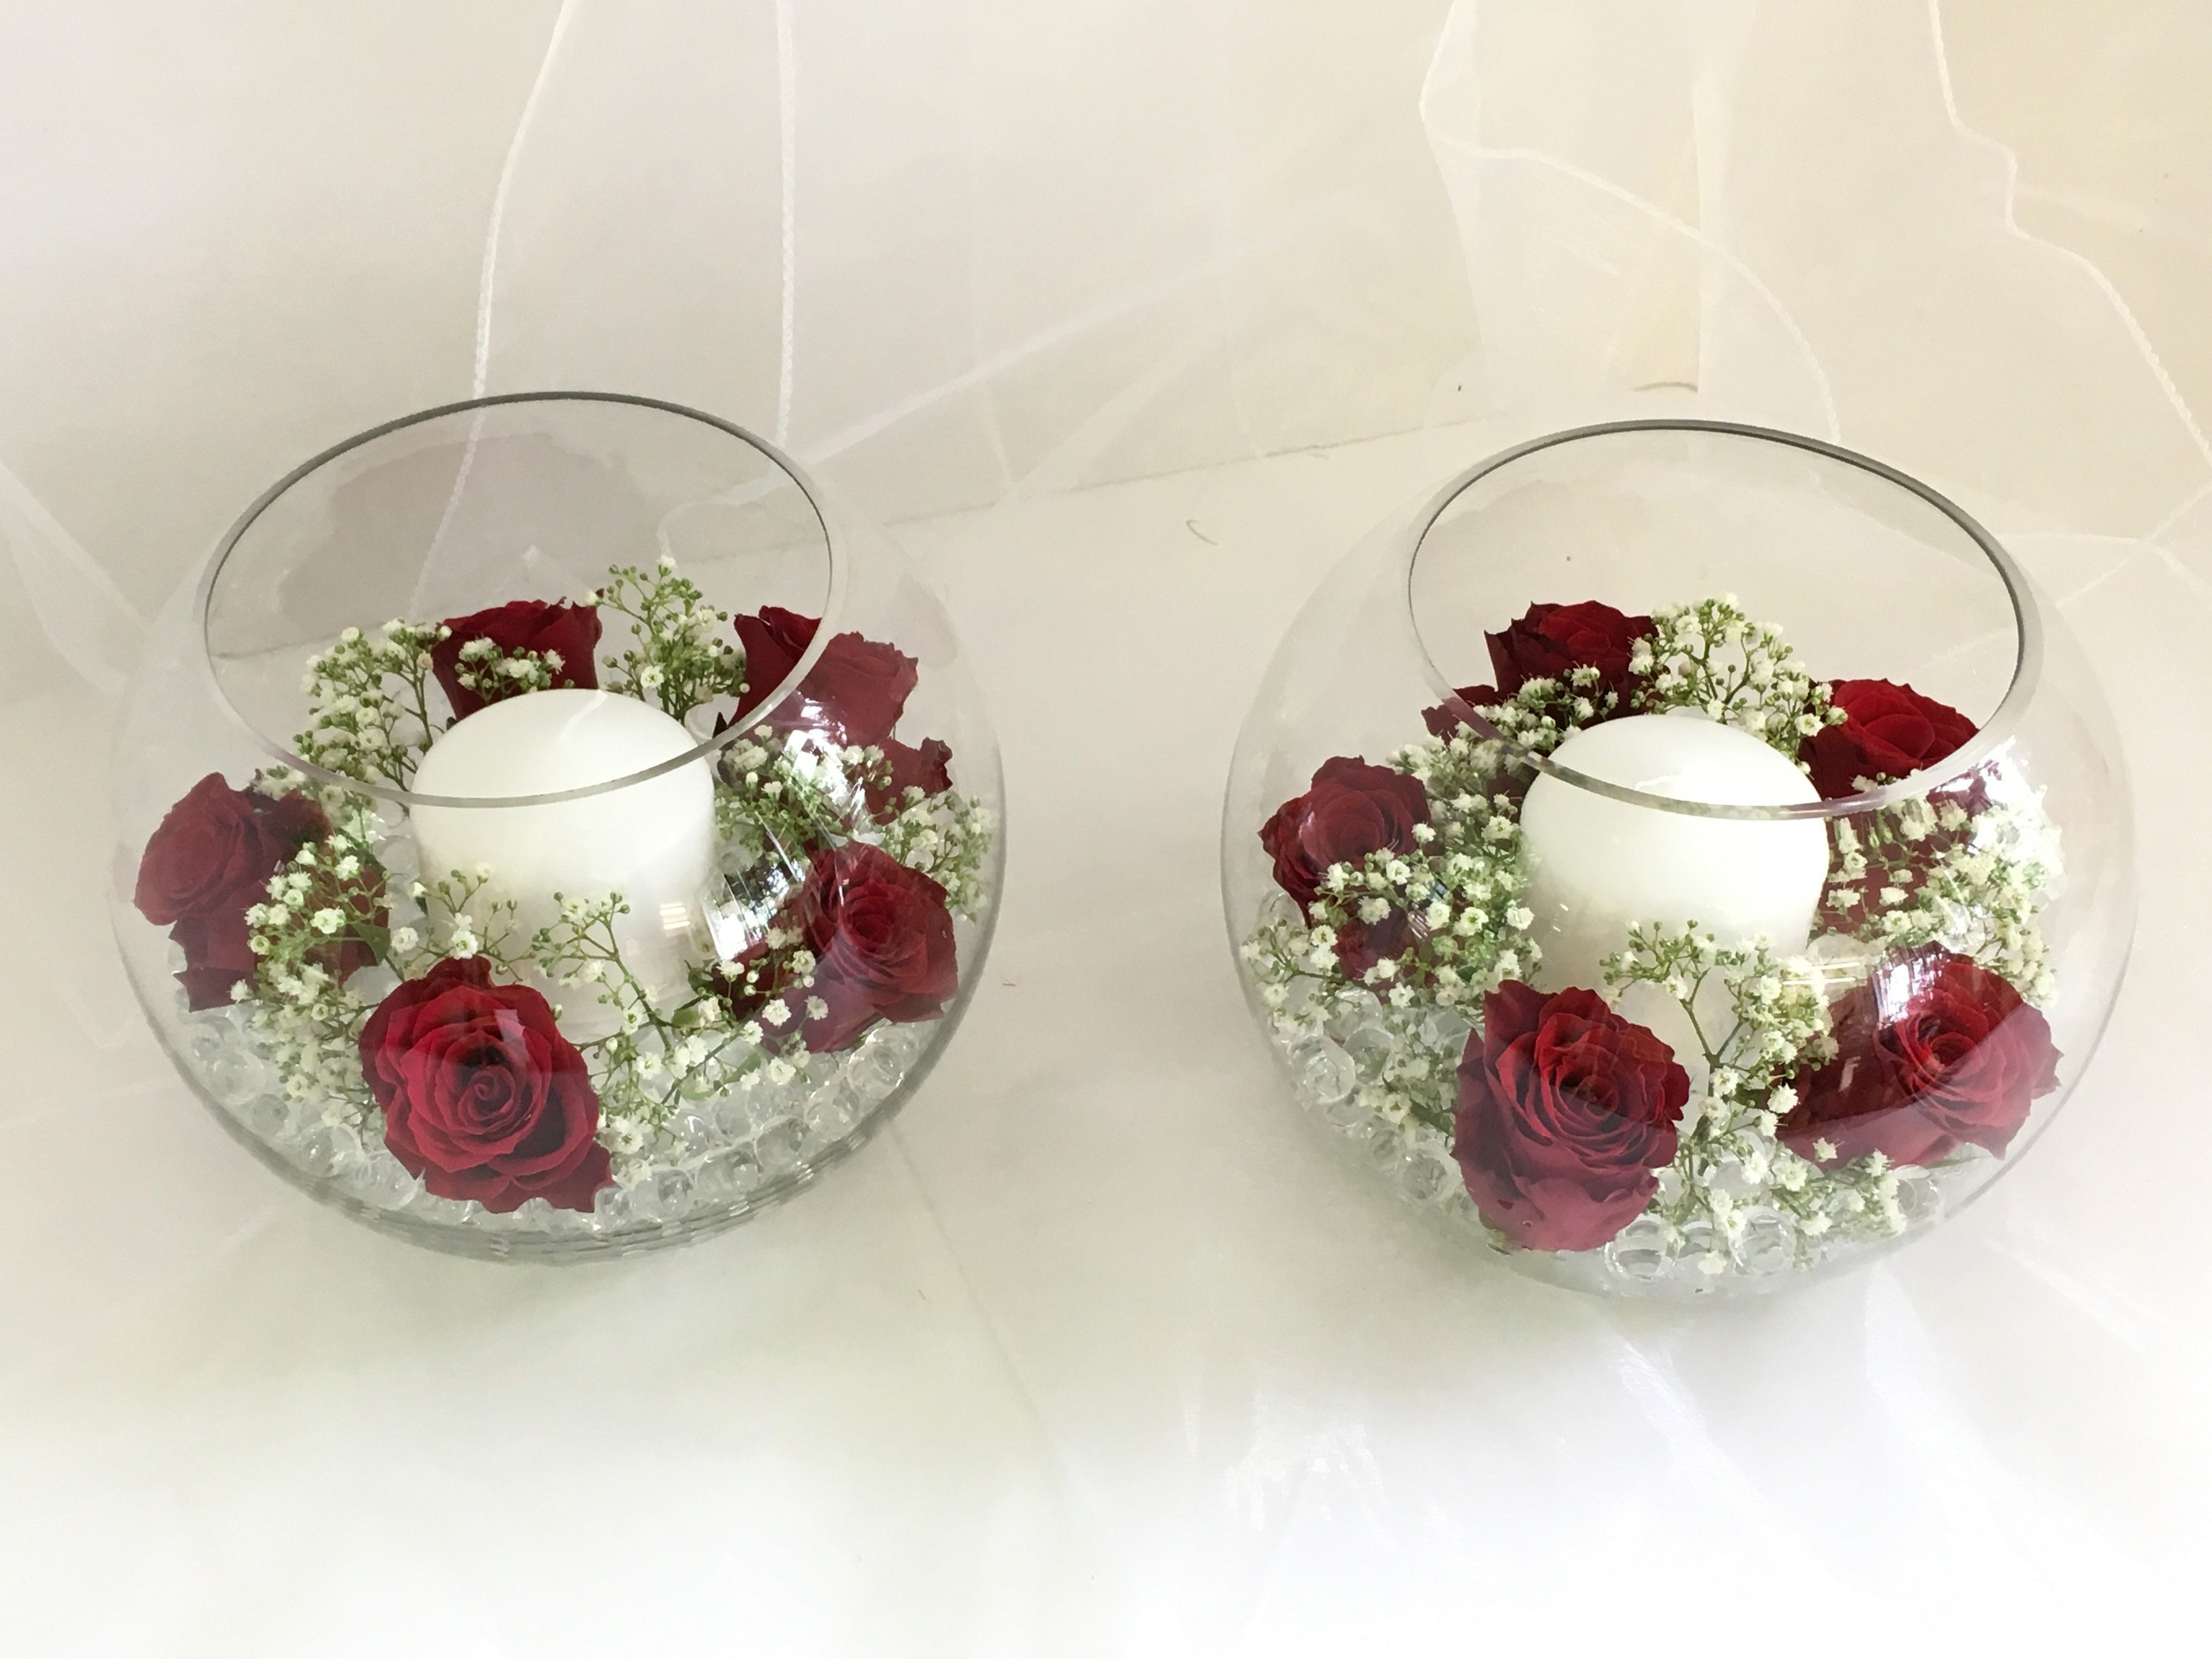 Beautiful Red Rose And White Gypsophila Wedding Top Table Guest Table Fresh Flower Fishbowl Arran Red Bridal Bouquet Red Rose Bridal Bouquet Red Rose Wedding